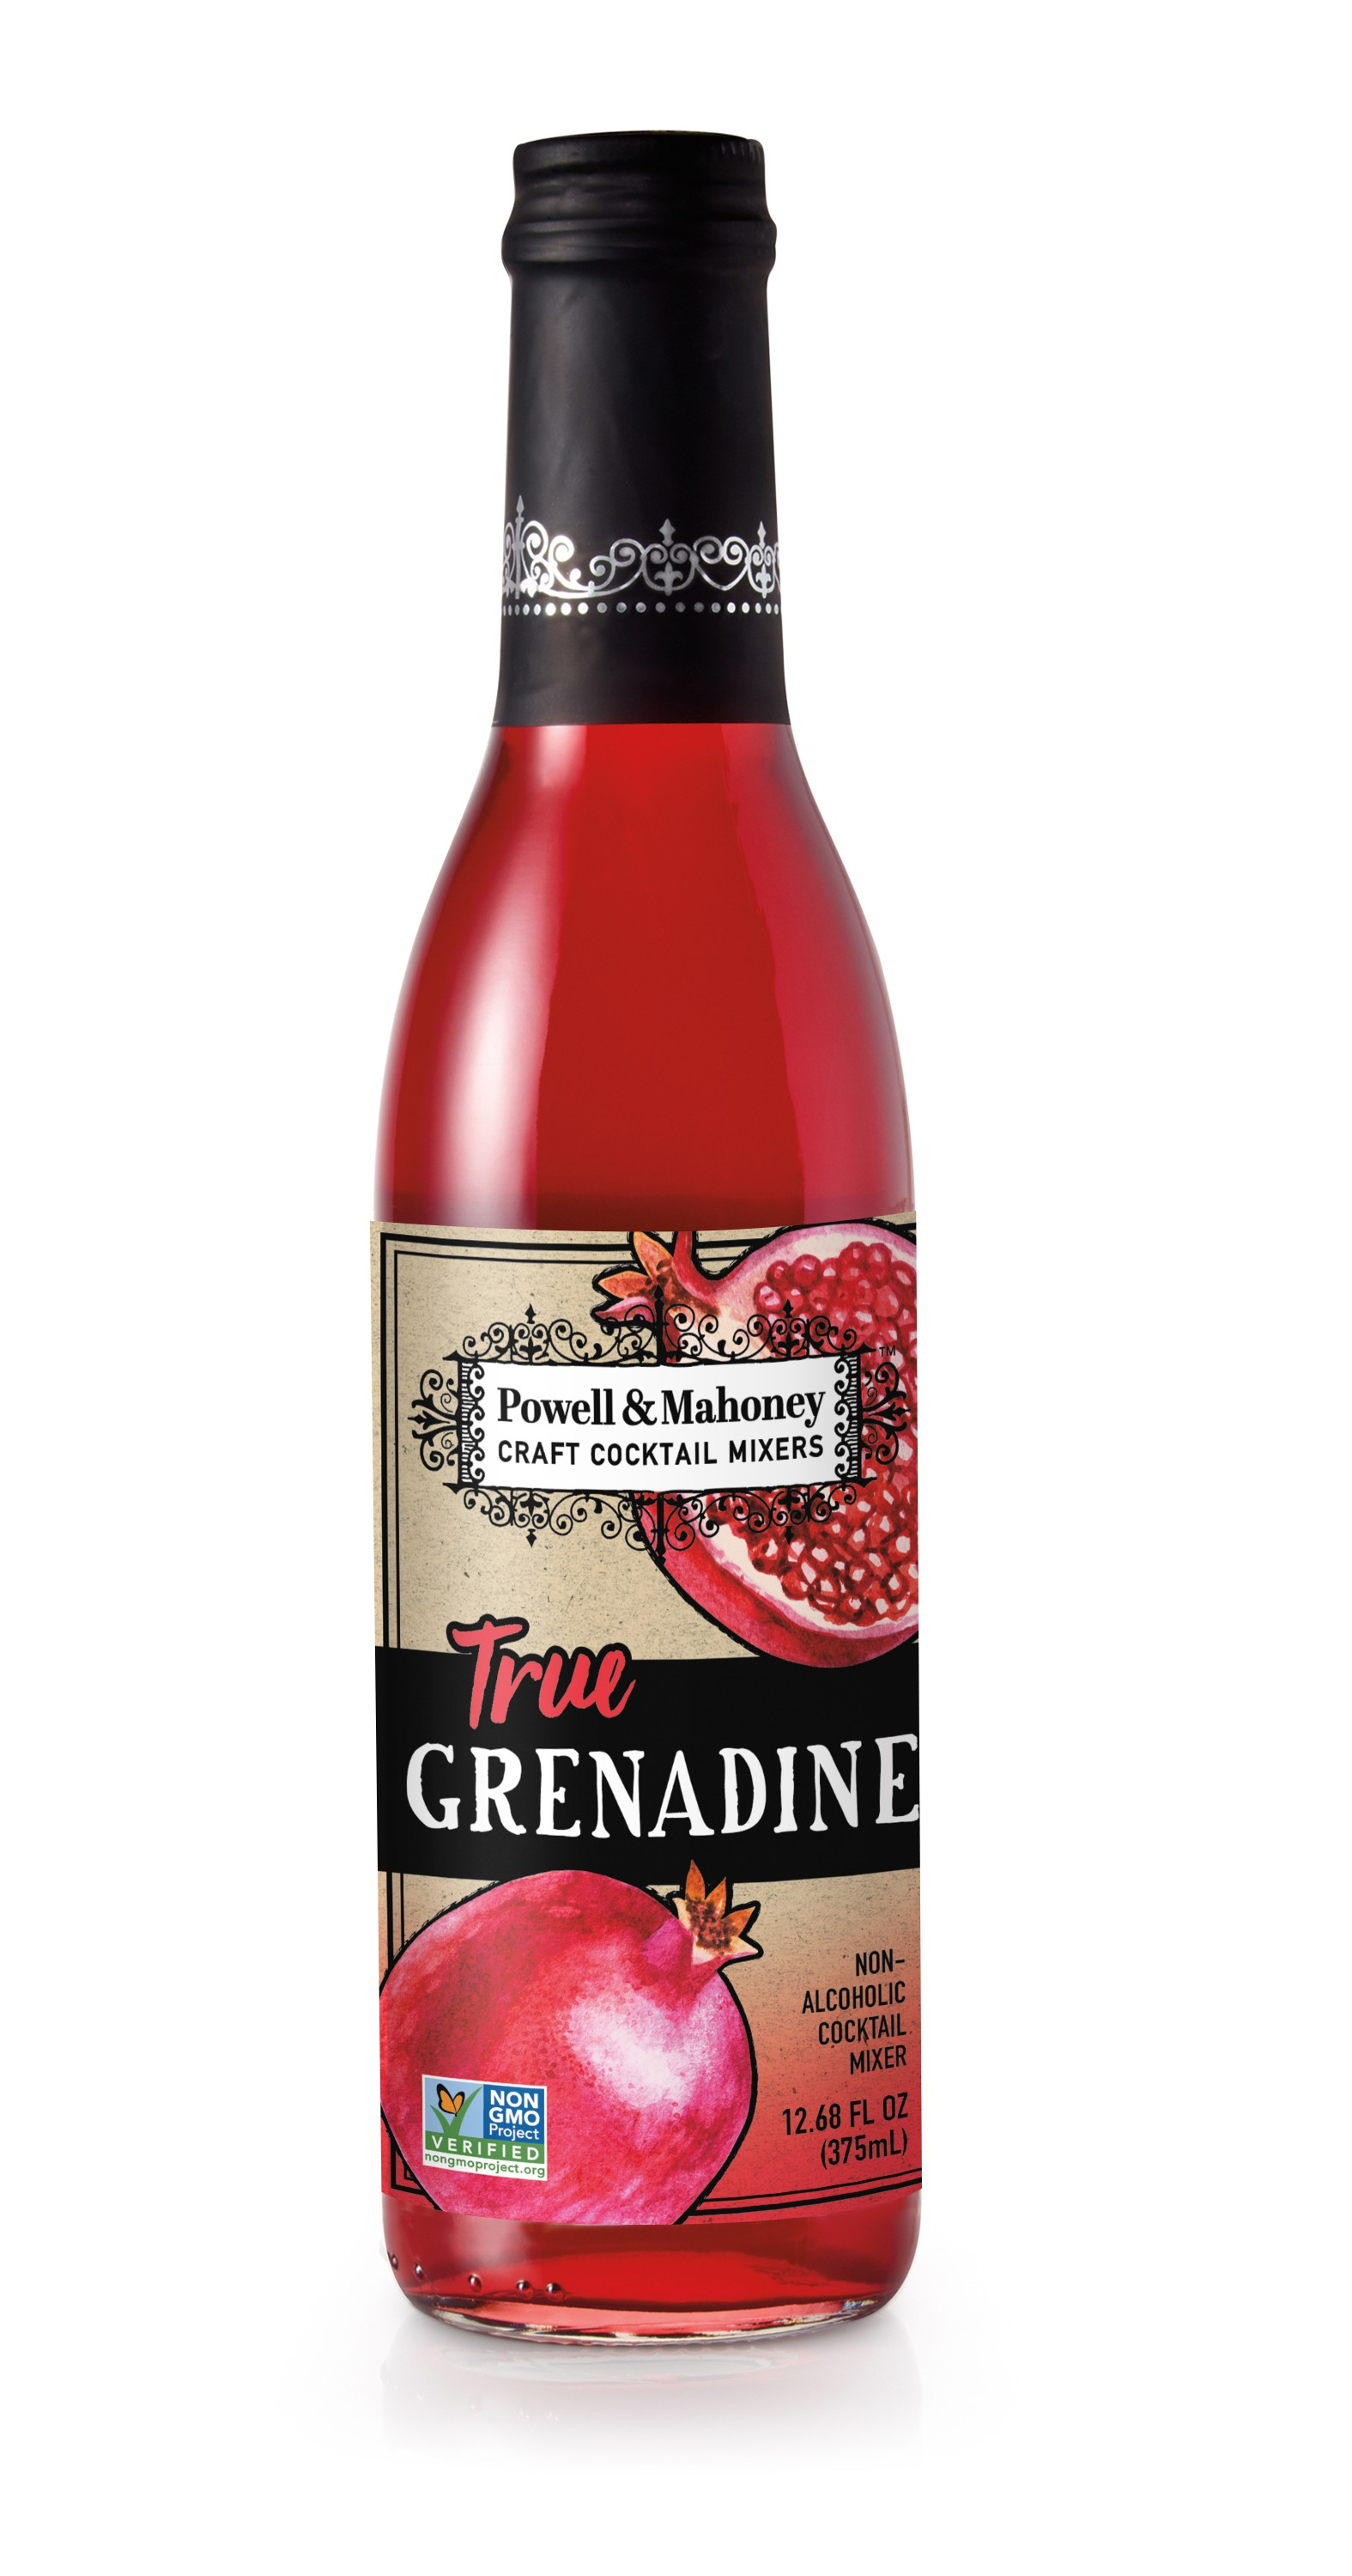 Powell & Mahoney True Grenadine - 375mL Bottle